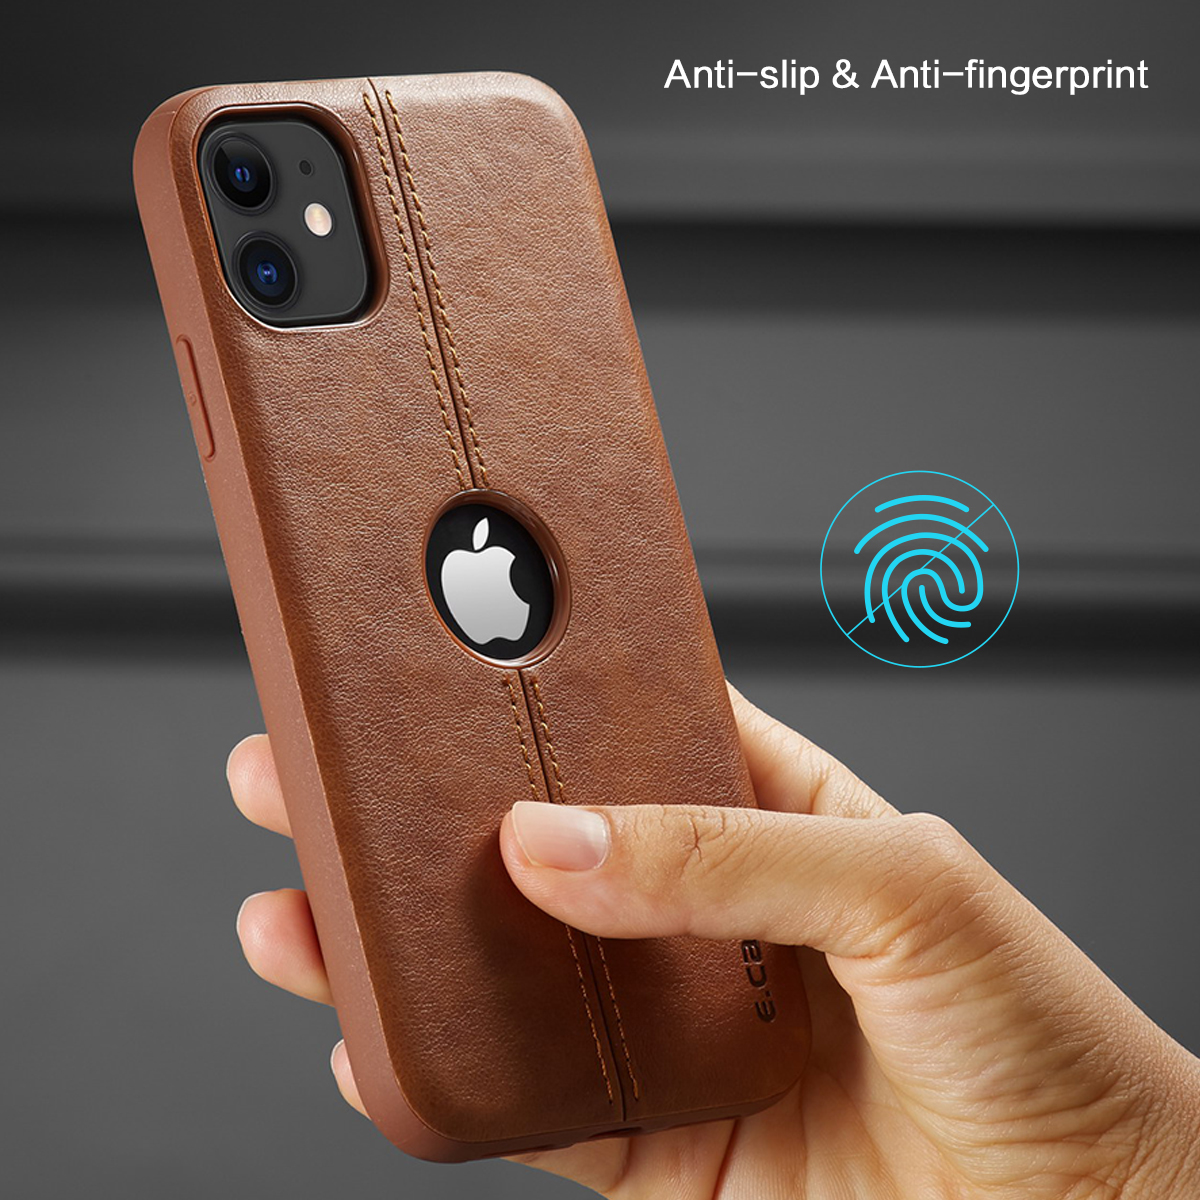 H10033883dd10454ea4a67372b35aa73az For iPhone 11 11 Pro 11 Pro Max Case New SLIM Luxury Leather Back Case Cover For iPhone 11 XR XS MAX 8 7 6 Plus Shockproof Case